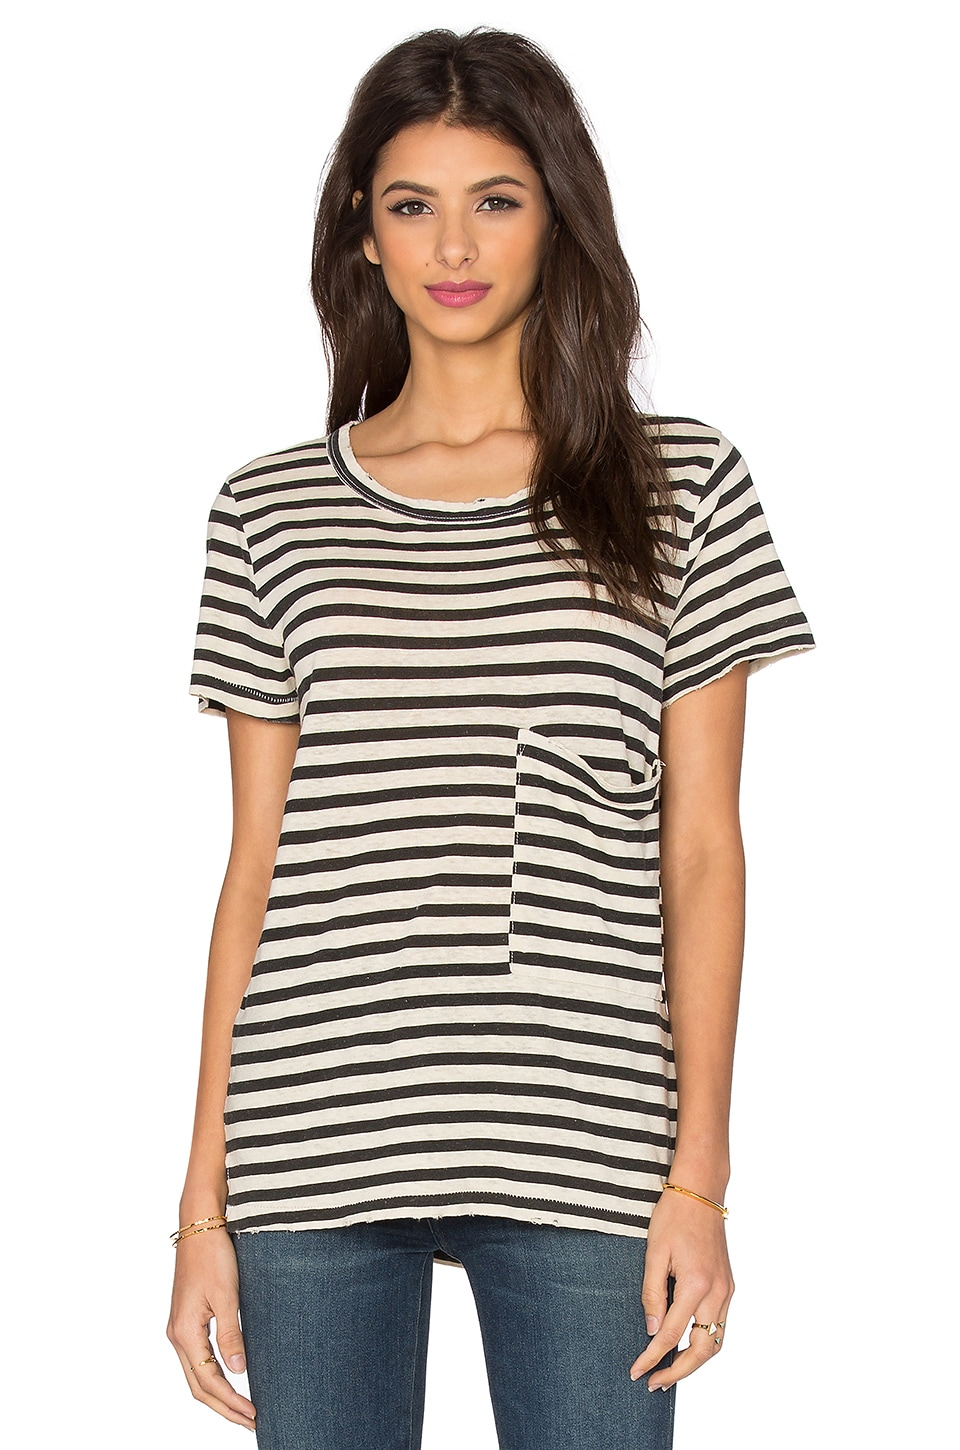 Current/Elliott The Long Pocket Tee in Cream & Black Distressed Stripe